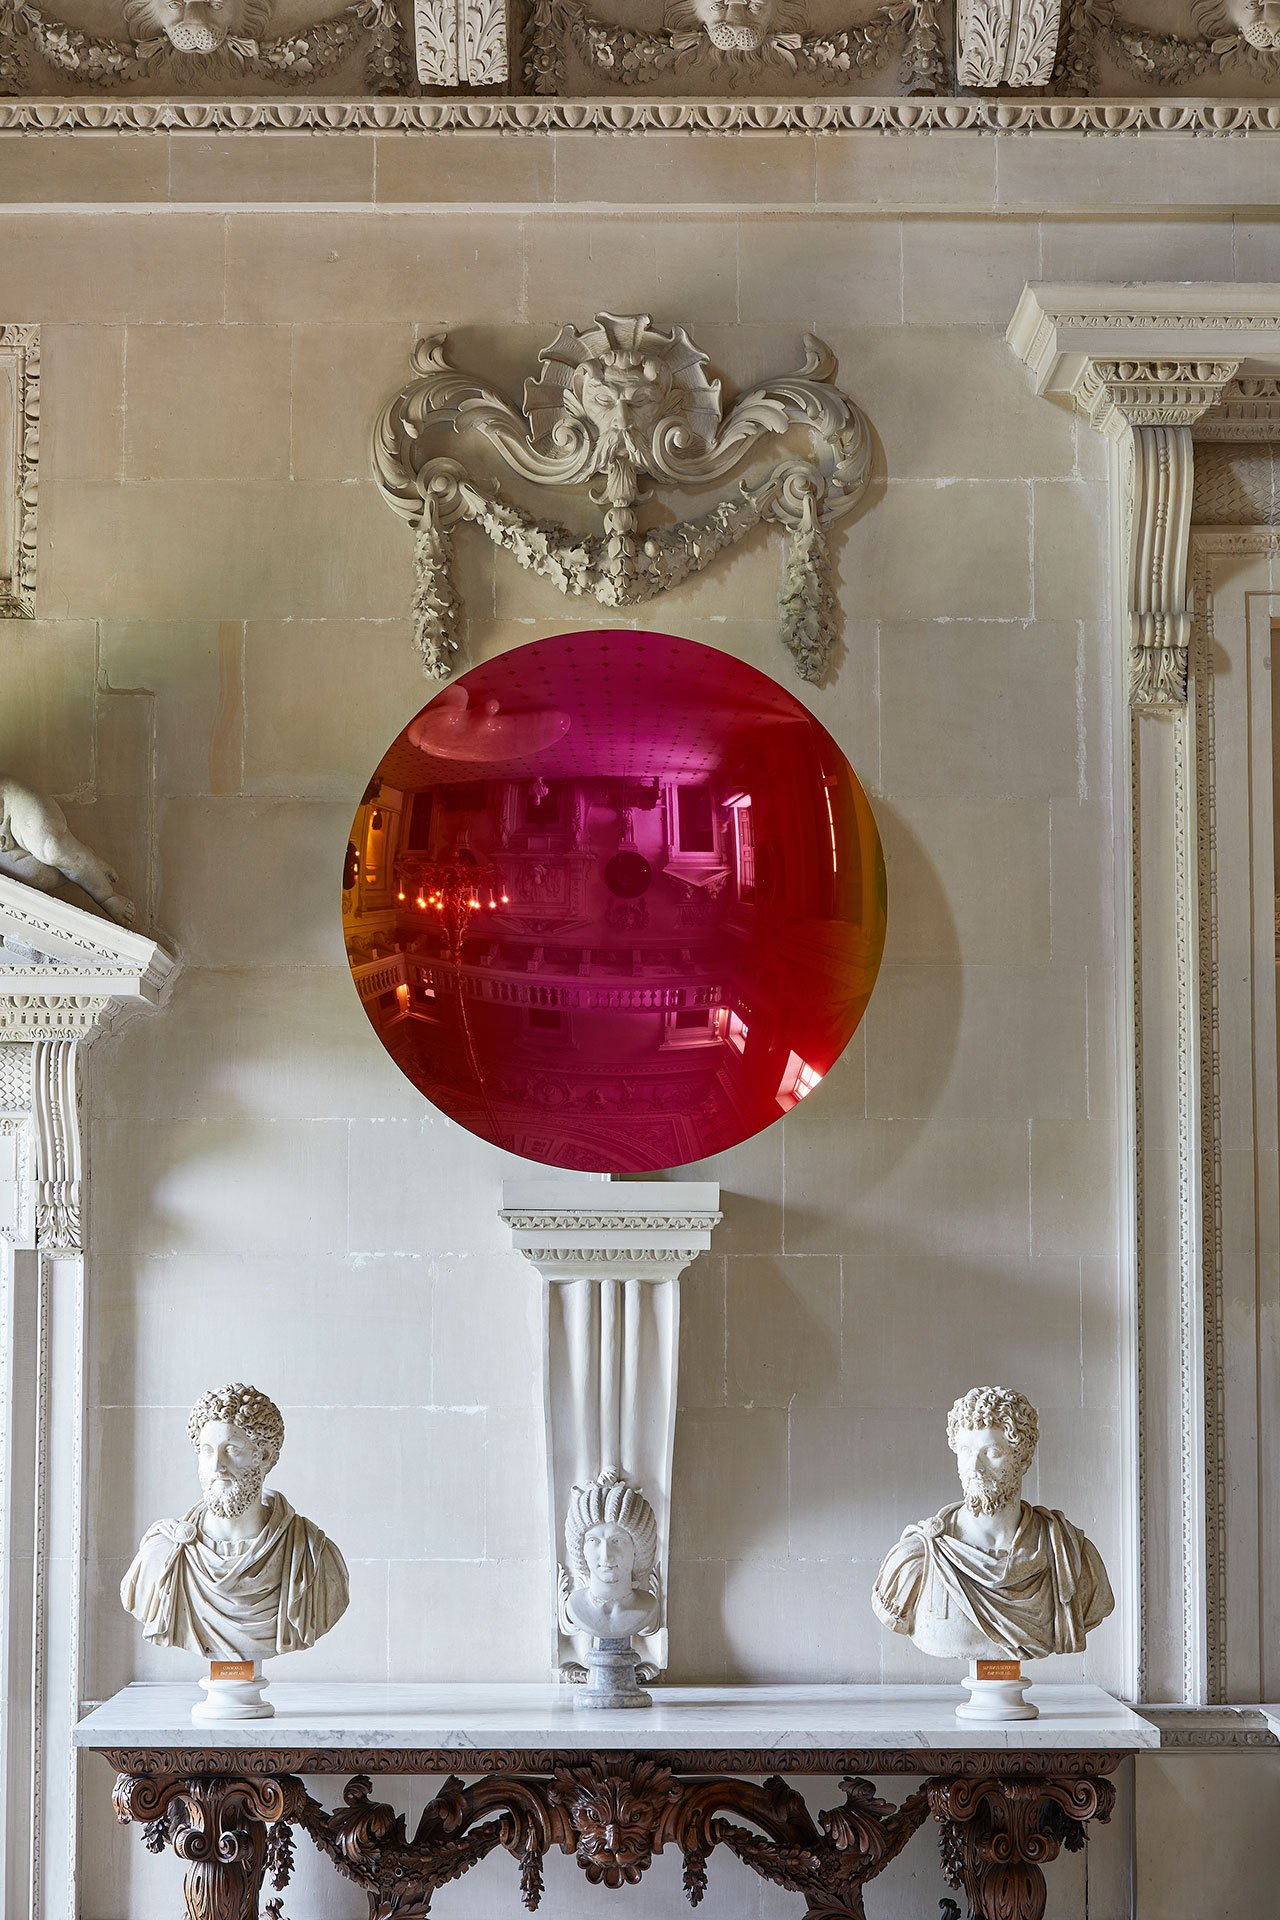 Exhibition view, Anish Kapoor at Houghton Hall. © Anish Kapoor. All rights reserved DACS, 2020. Photo by Pete Huggins. Featured: Spanish and Pagan Gold to Magenta, 2018. Courtesy the artist and Lisson Gallery.